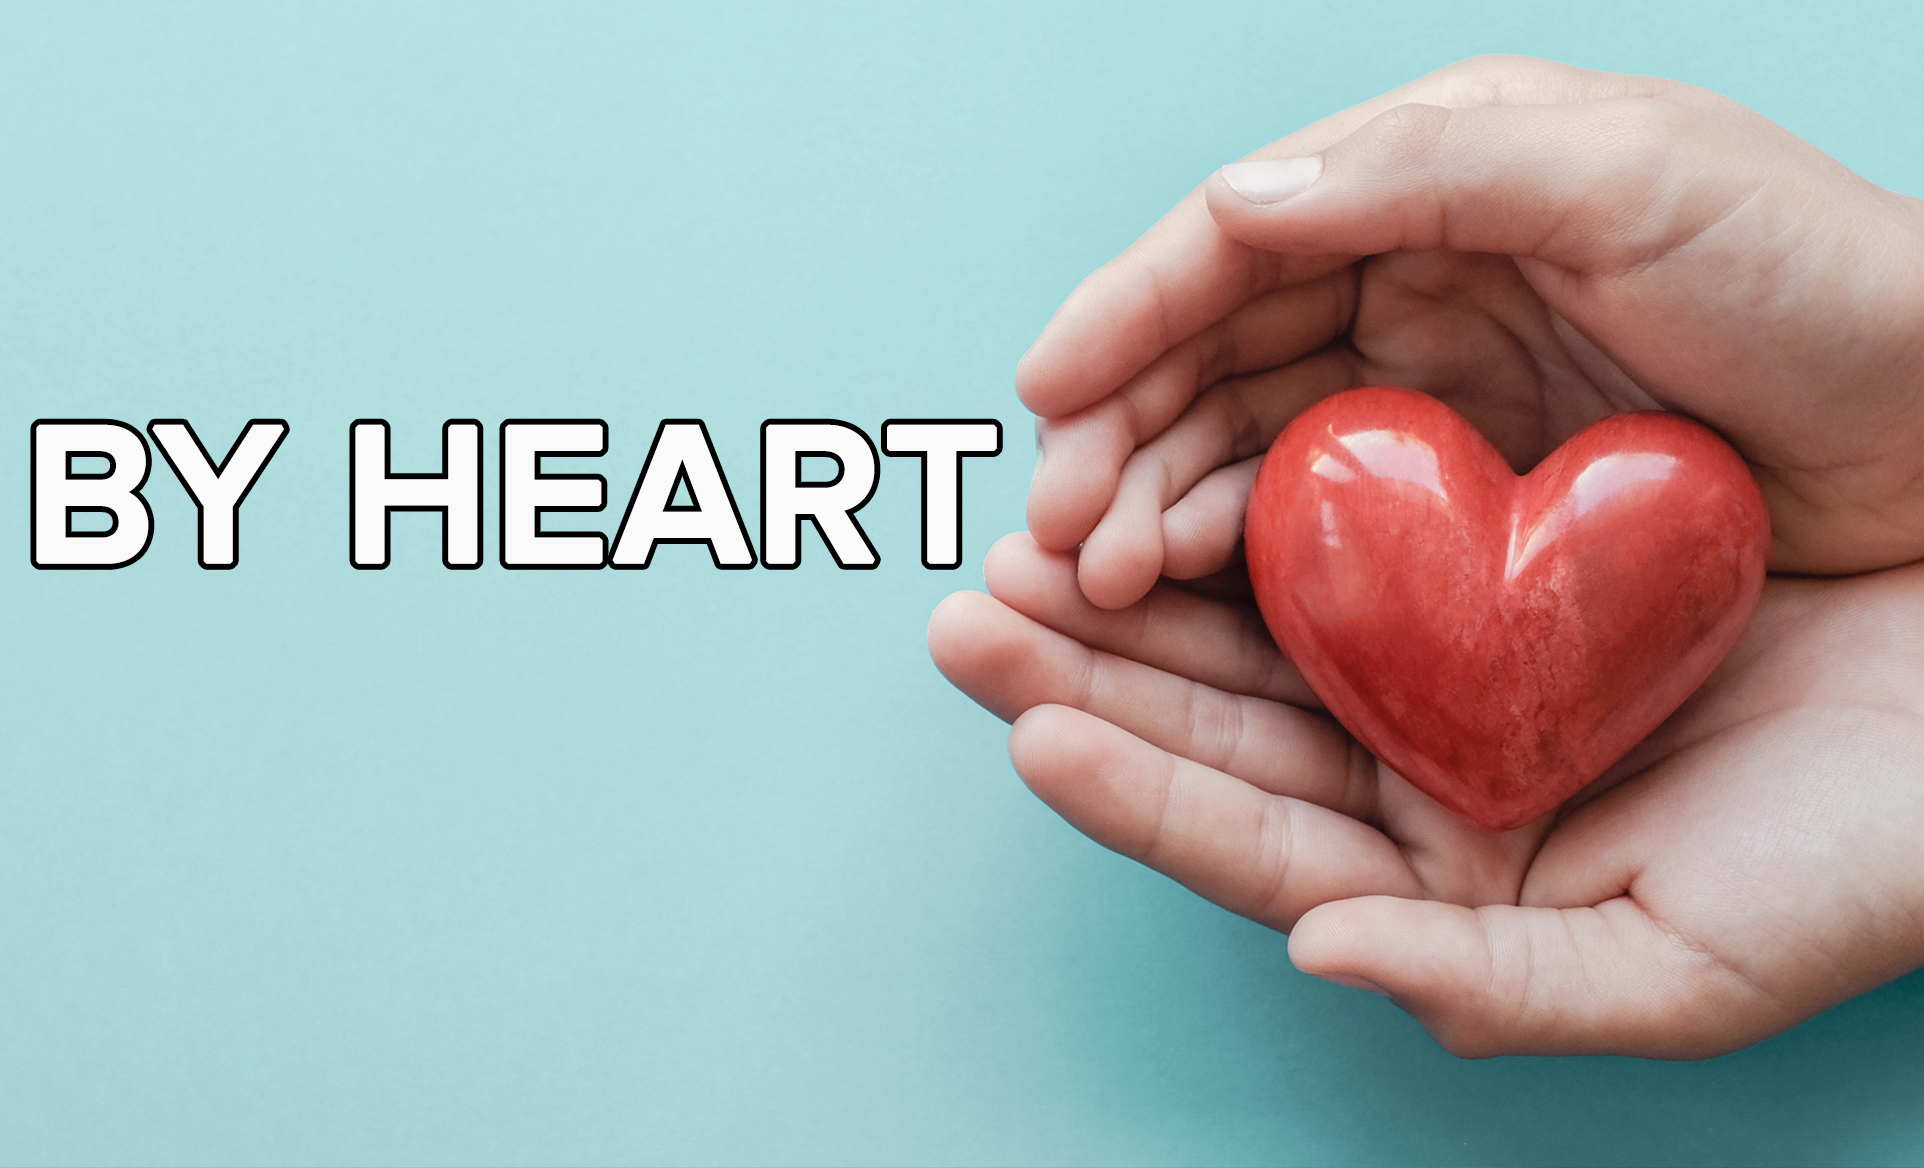 A person holding a heart-shaped object